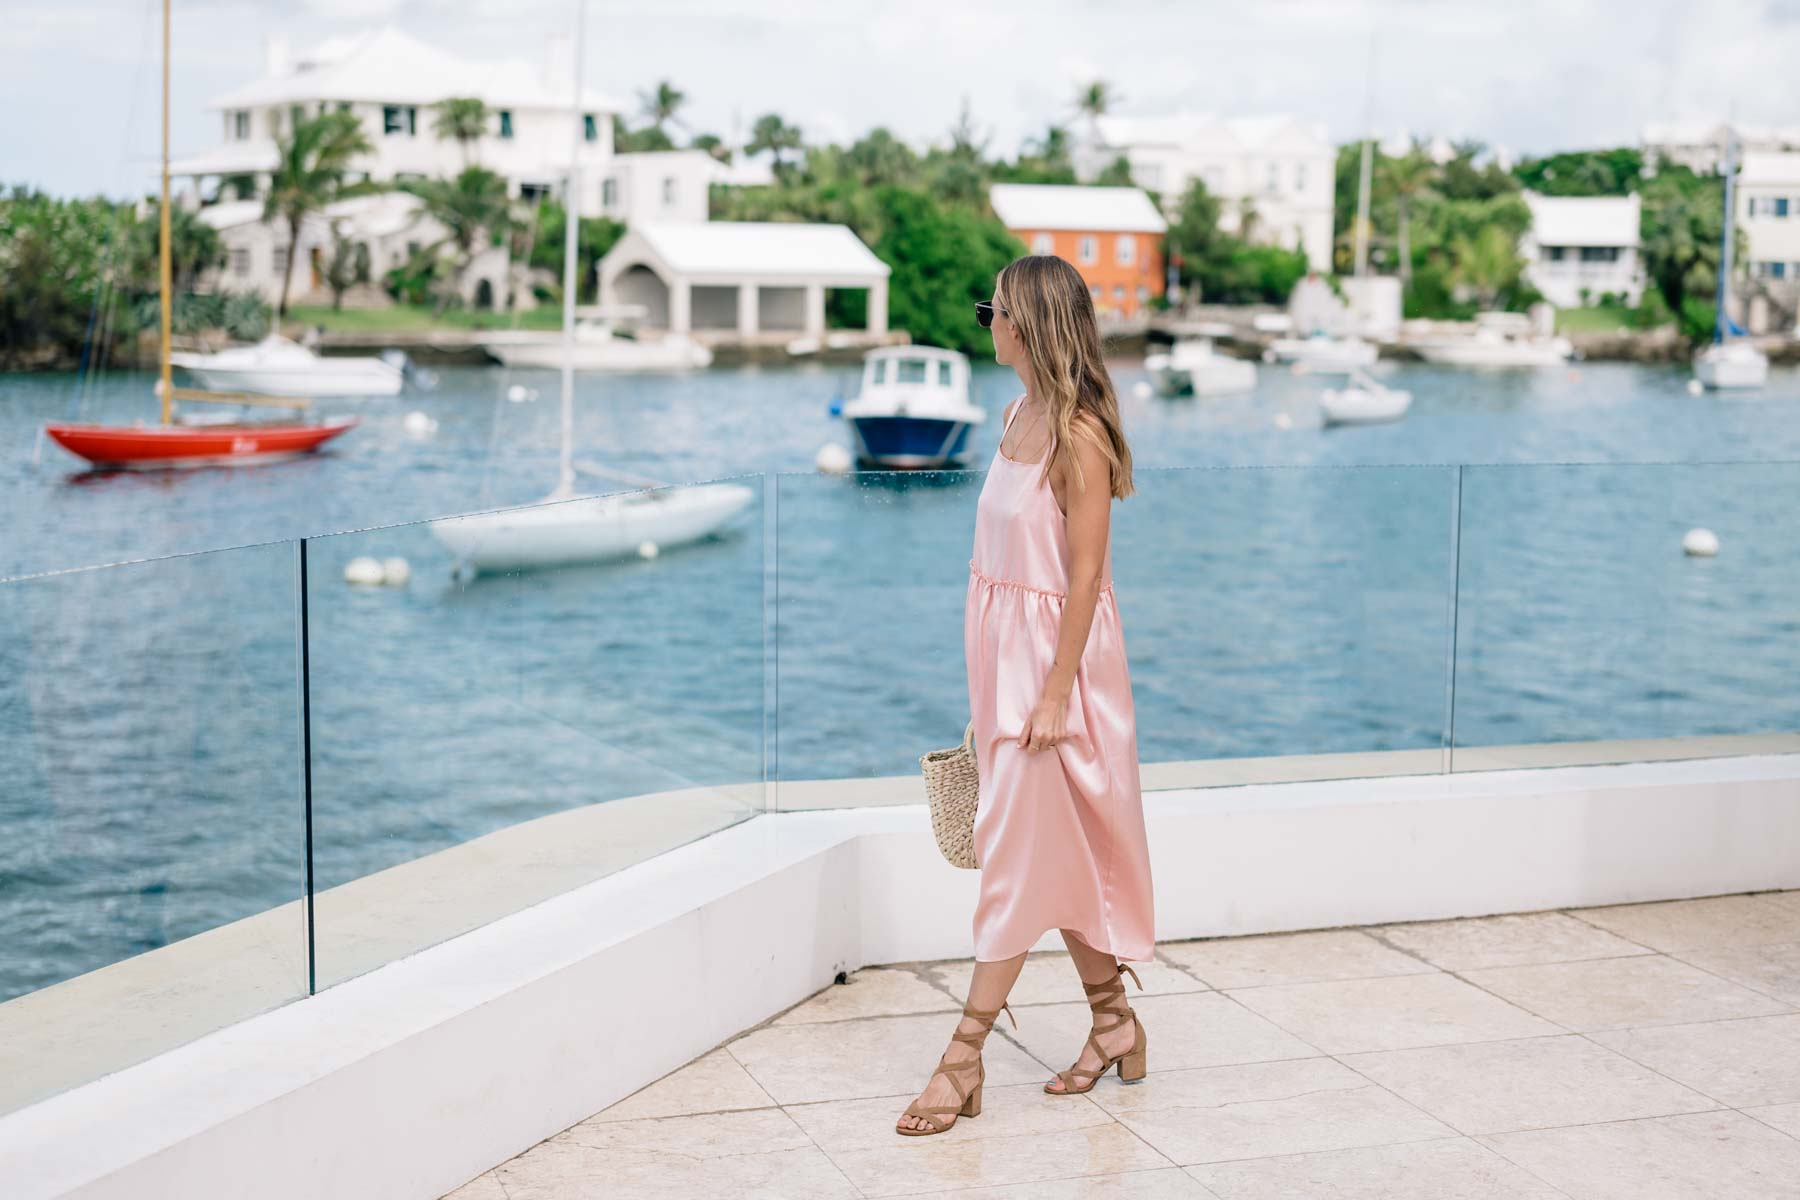 Jess Ann Kirby in Bermuda wearing a Blush Midi Dress by Steele from Anthropologie